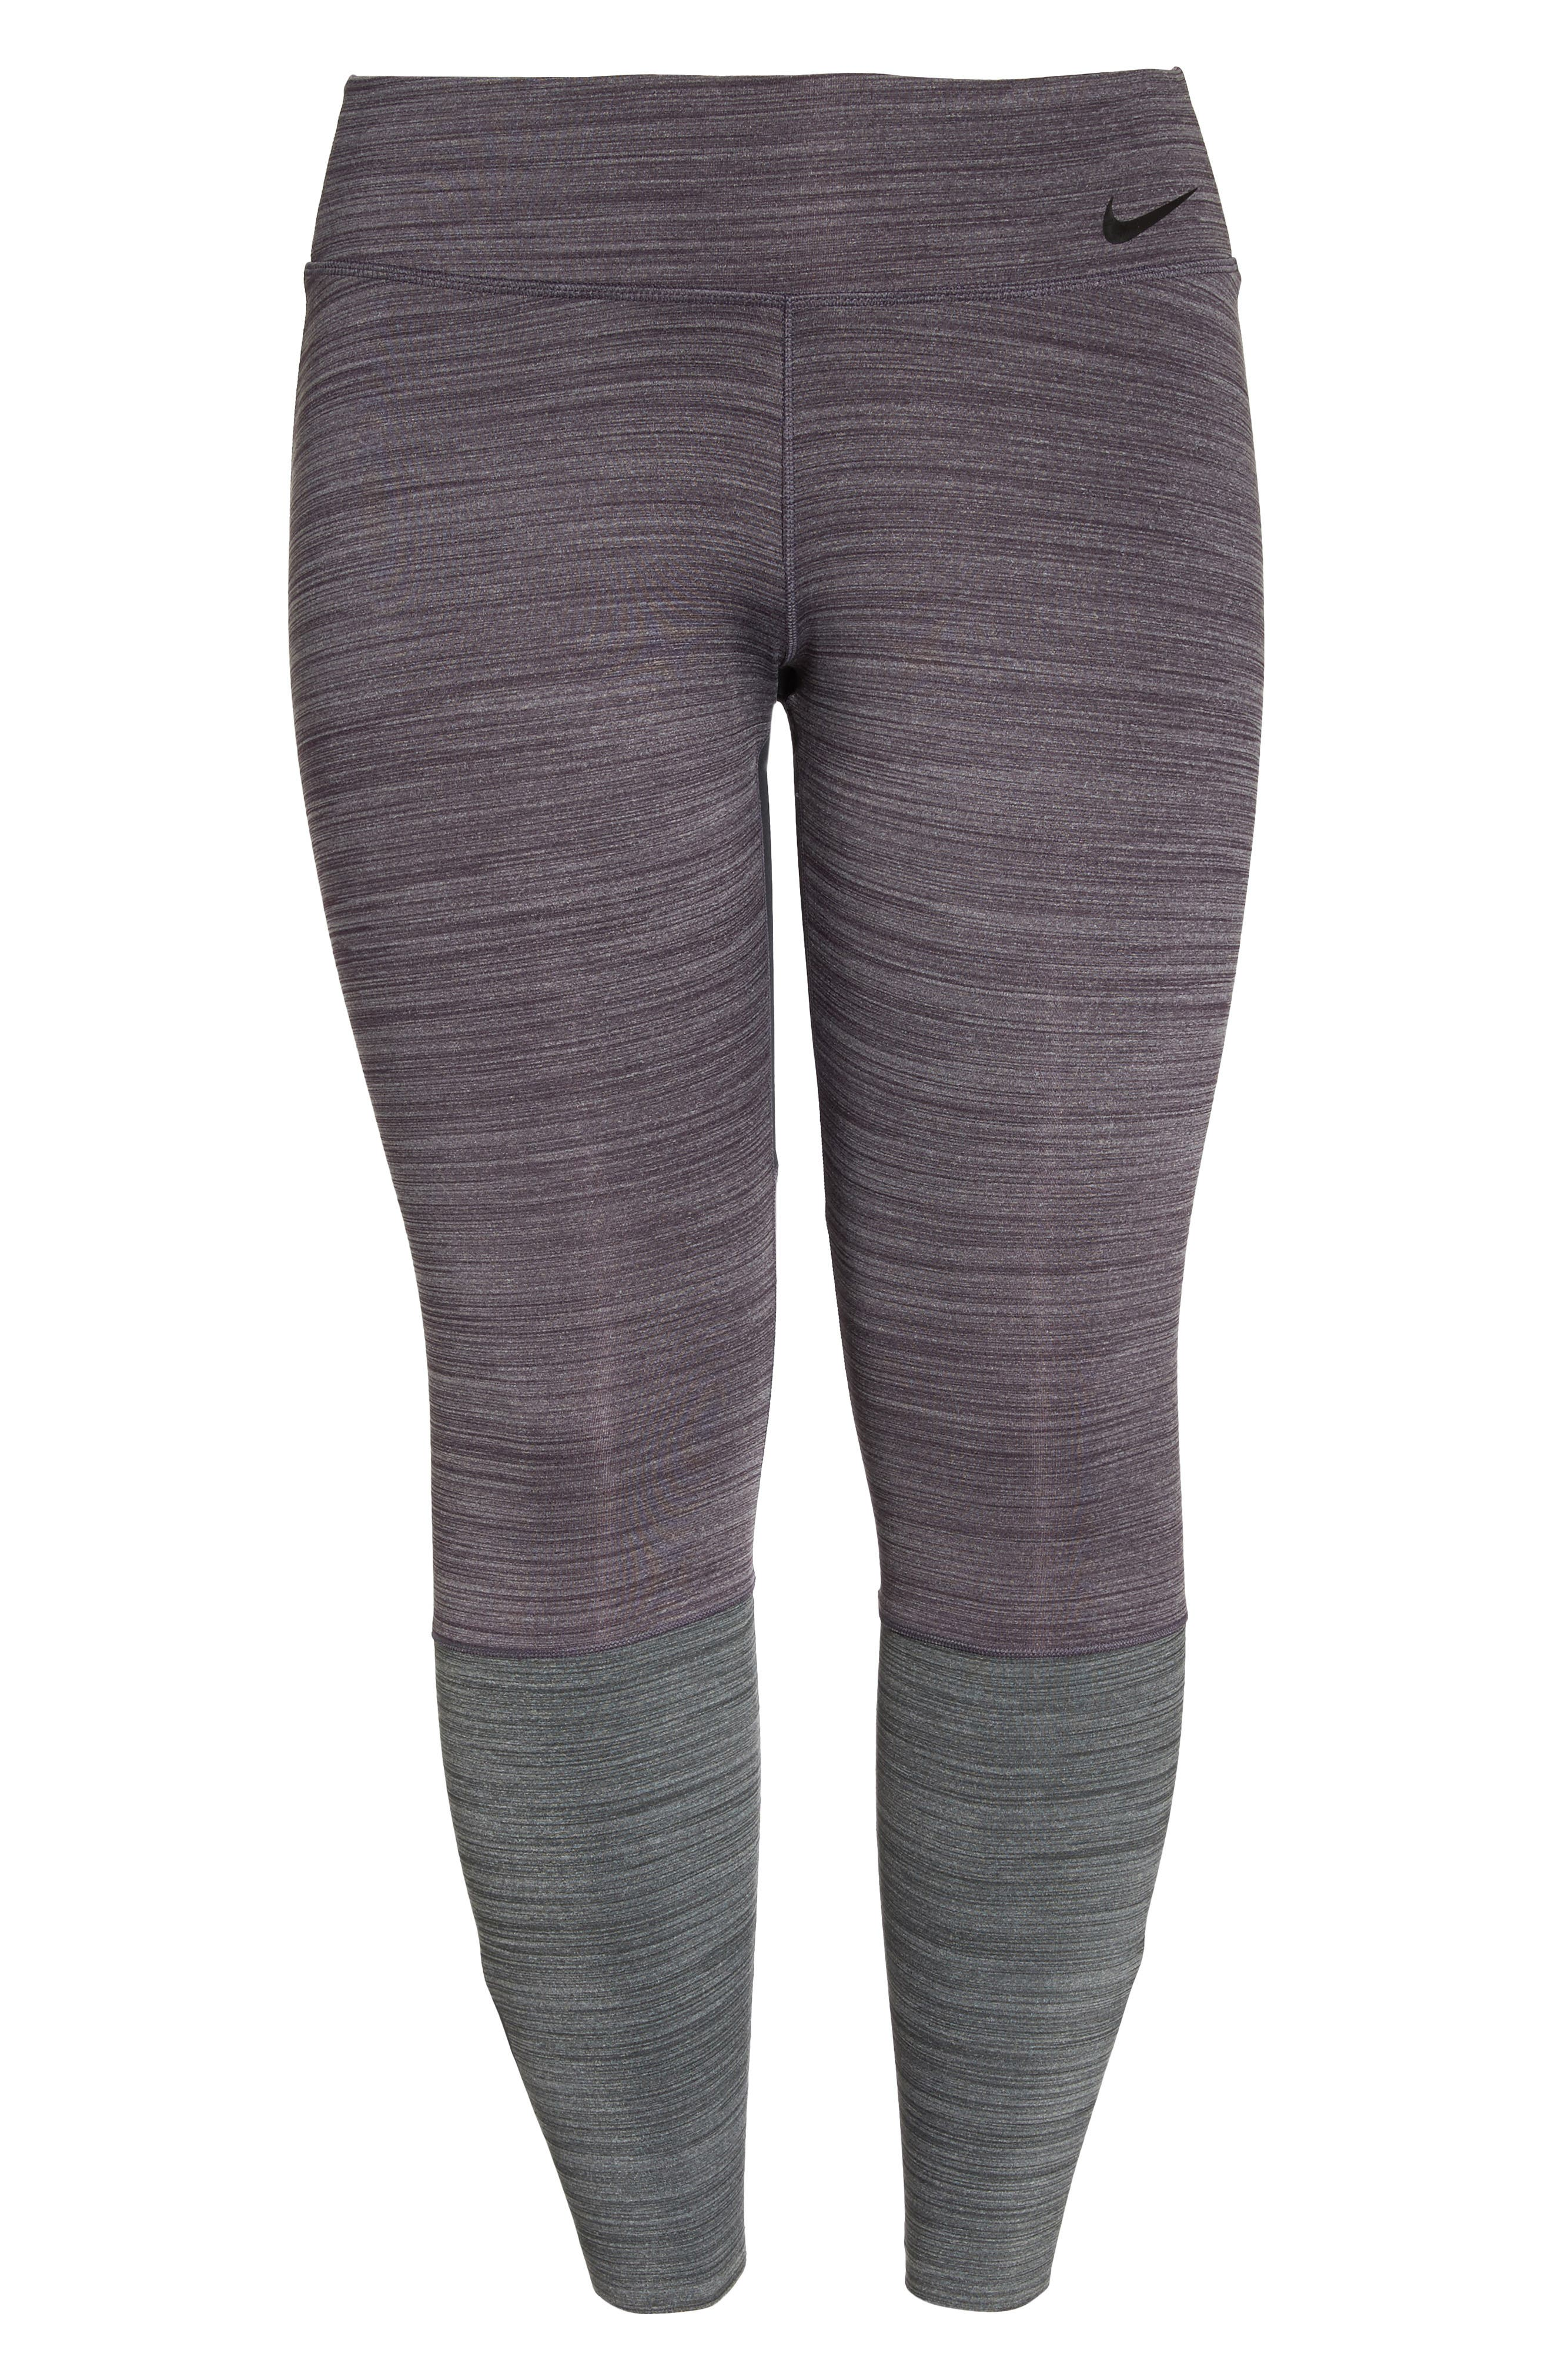 Legendary Training Tights,                             Alternate thumbnail 11, color,